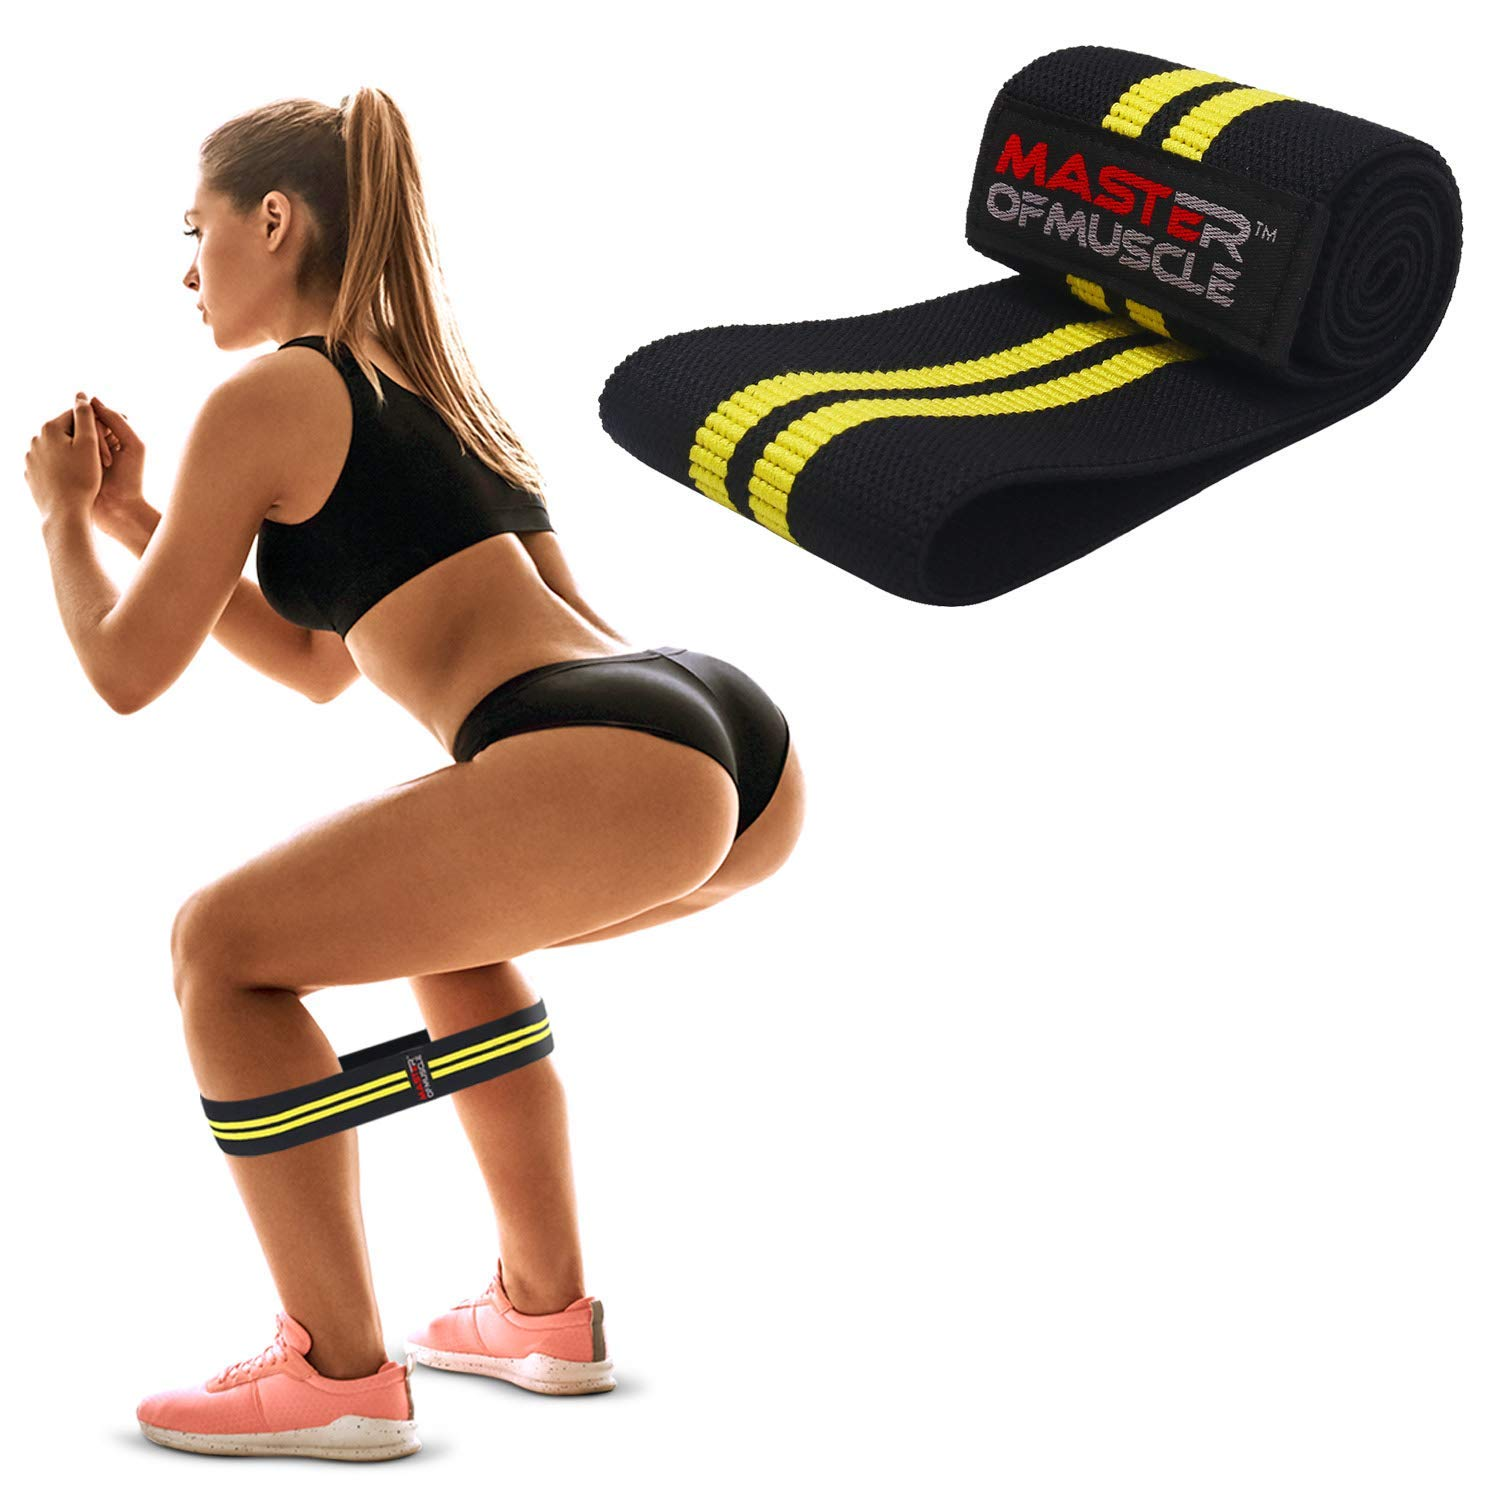 HIP RESISTANCE BAND – Heavy Fabric Hip Circle Bands for Glute & Legs Activation before Squat & Deadlifts – Grippy Non-Slip Heavy Duty Cloth for Best Booty, Hip and Butt Workout Exercise